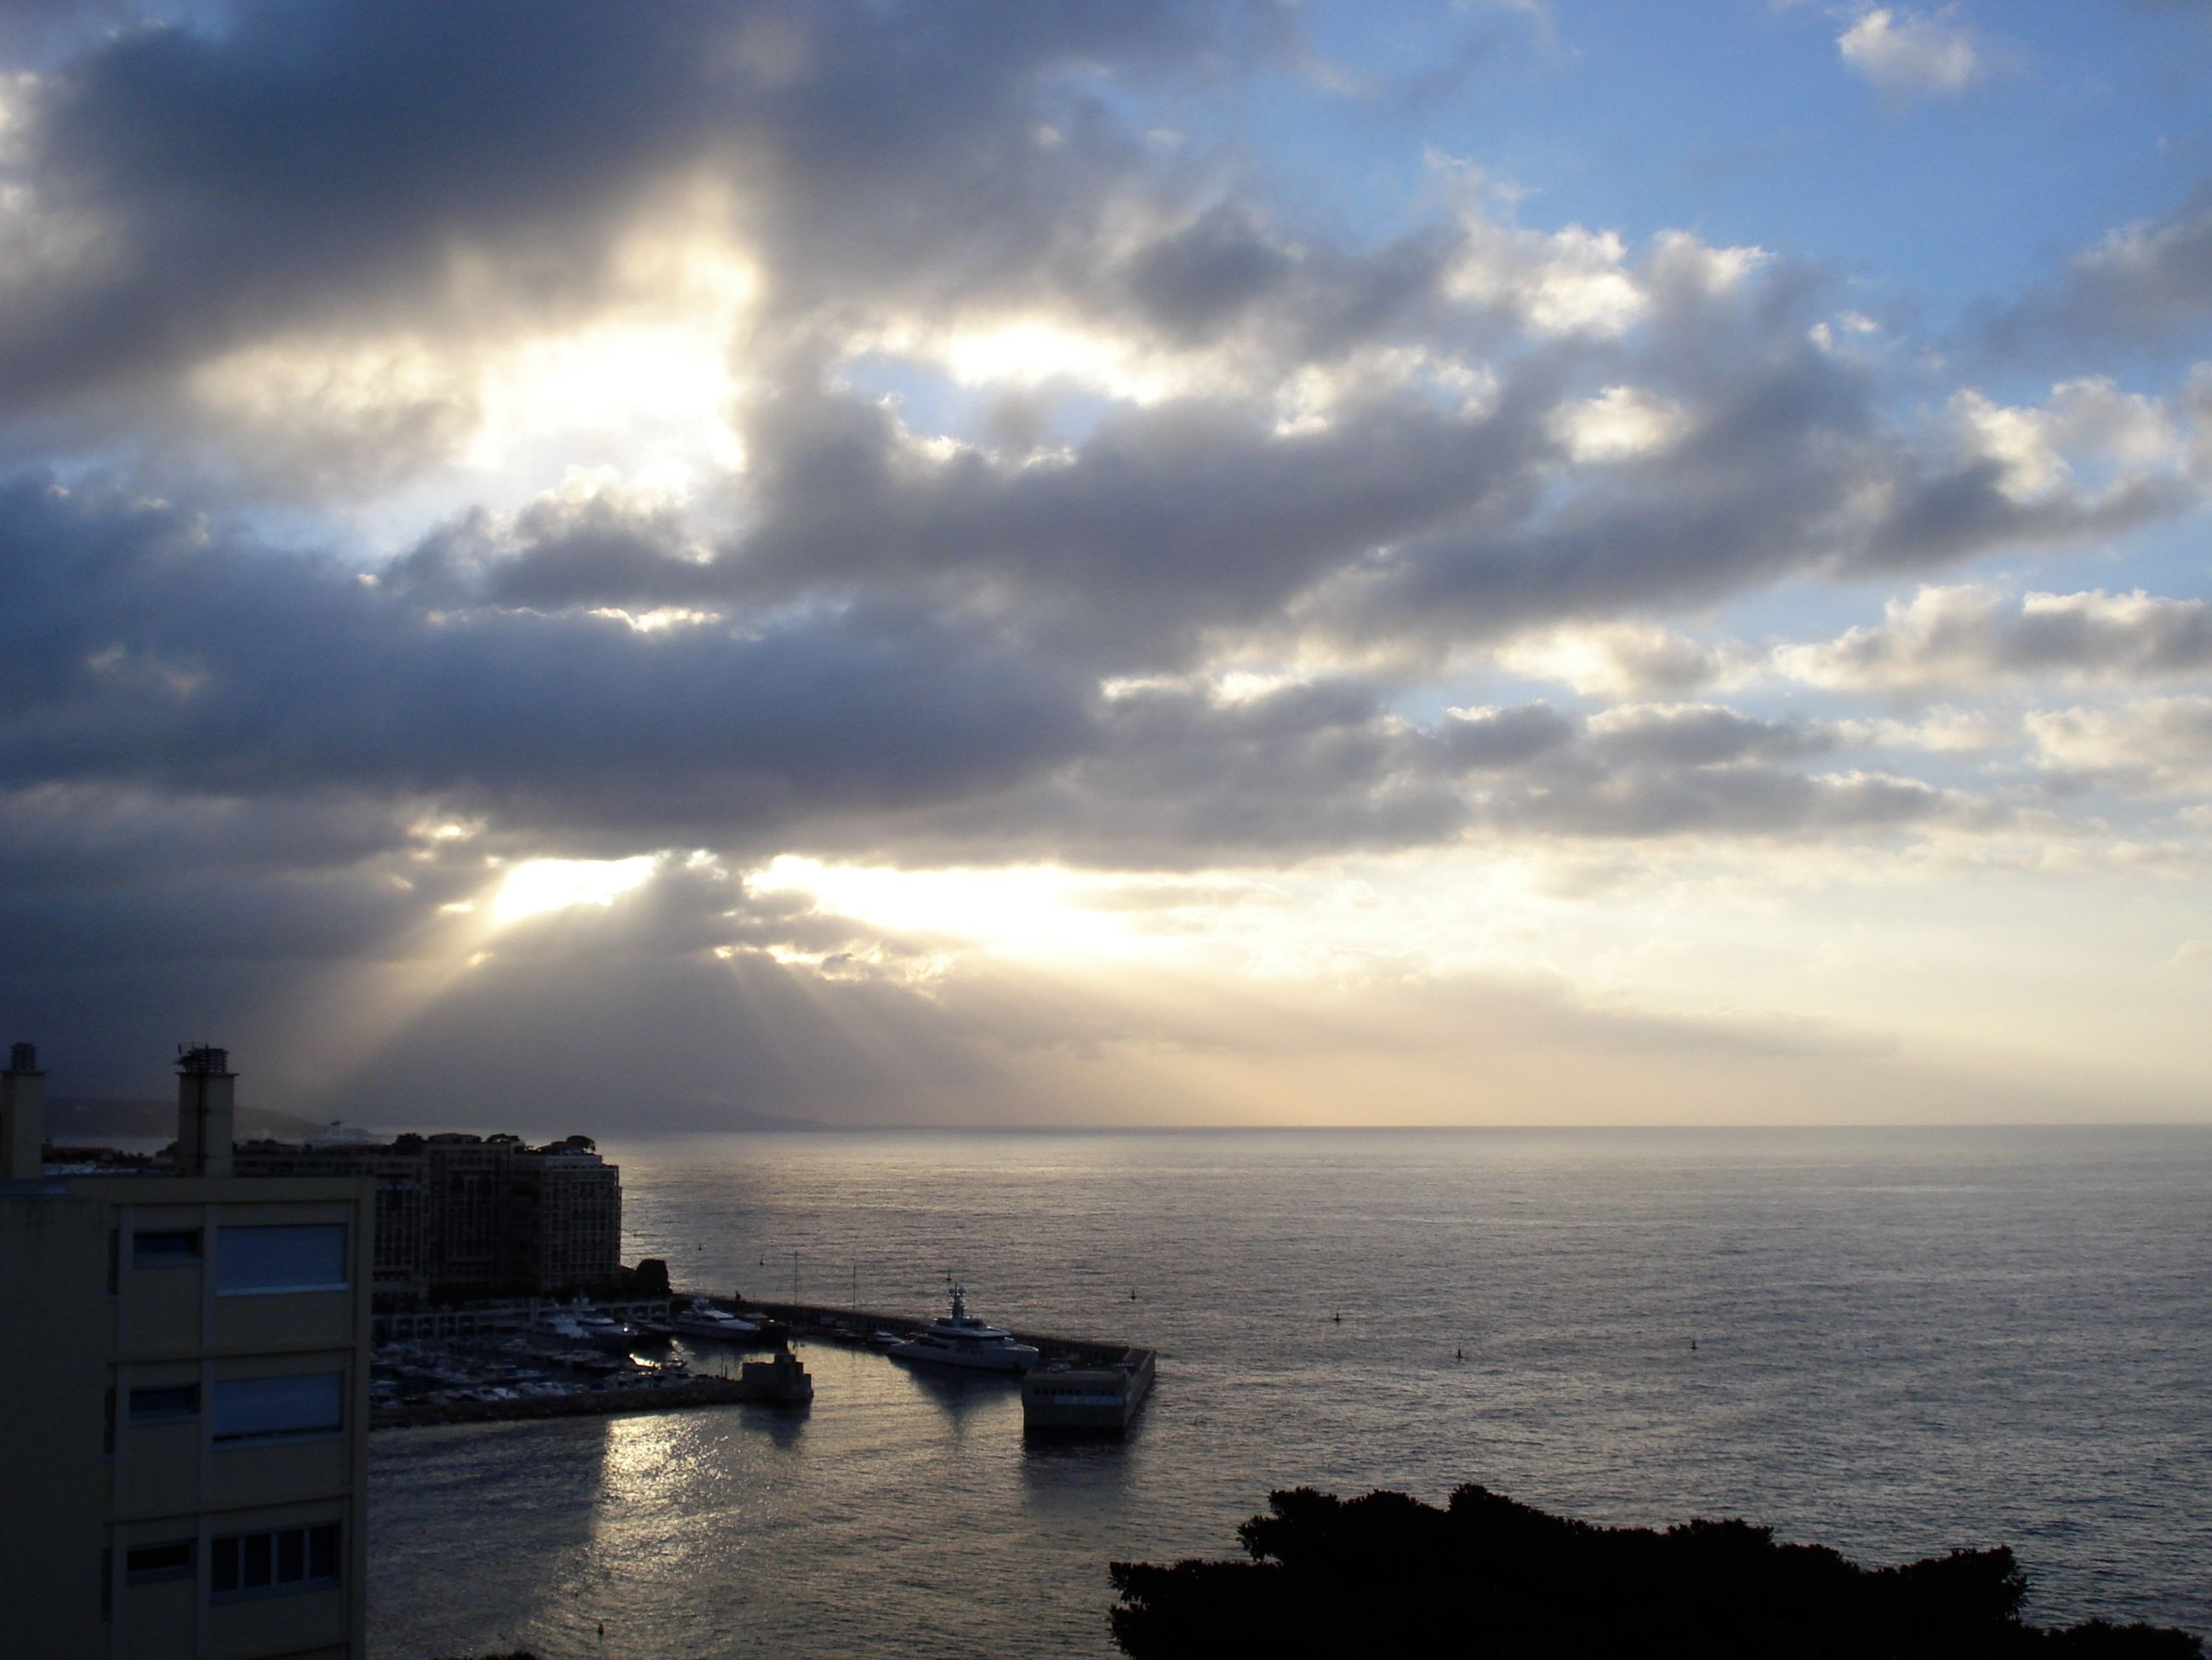 sea, water, horizon over water, sunbeam, scenics, cloud - sky, sky, beauty in nature, tranquil scene, tranquility, sun, cloudscape, cloud, back lit, nature, dramatic sky, outdoors, cloudy, day, waterfront, atmospheric mood, streaming, majestic, moody sky, seascape